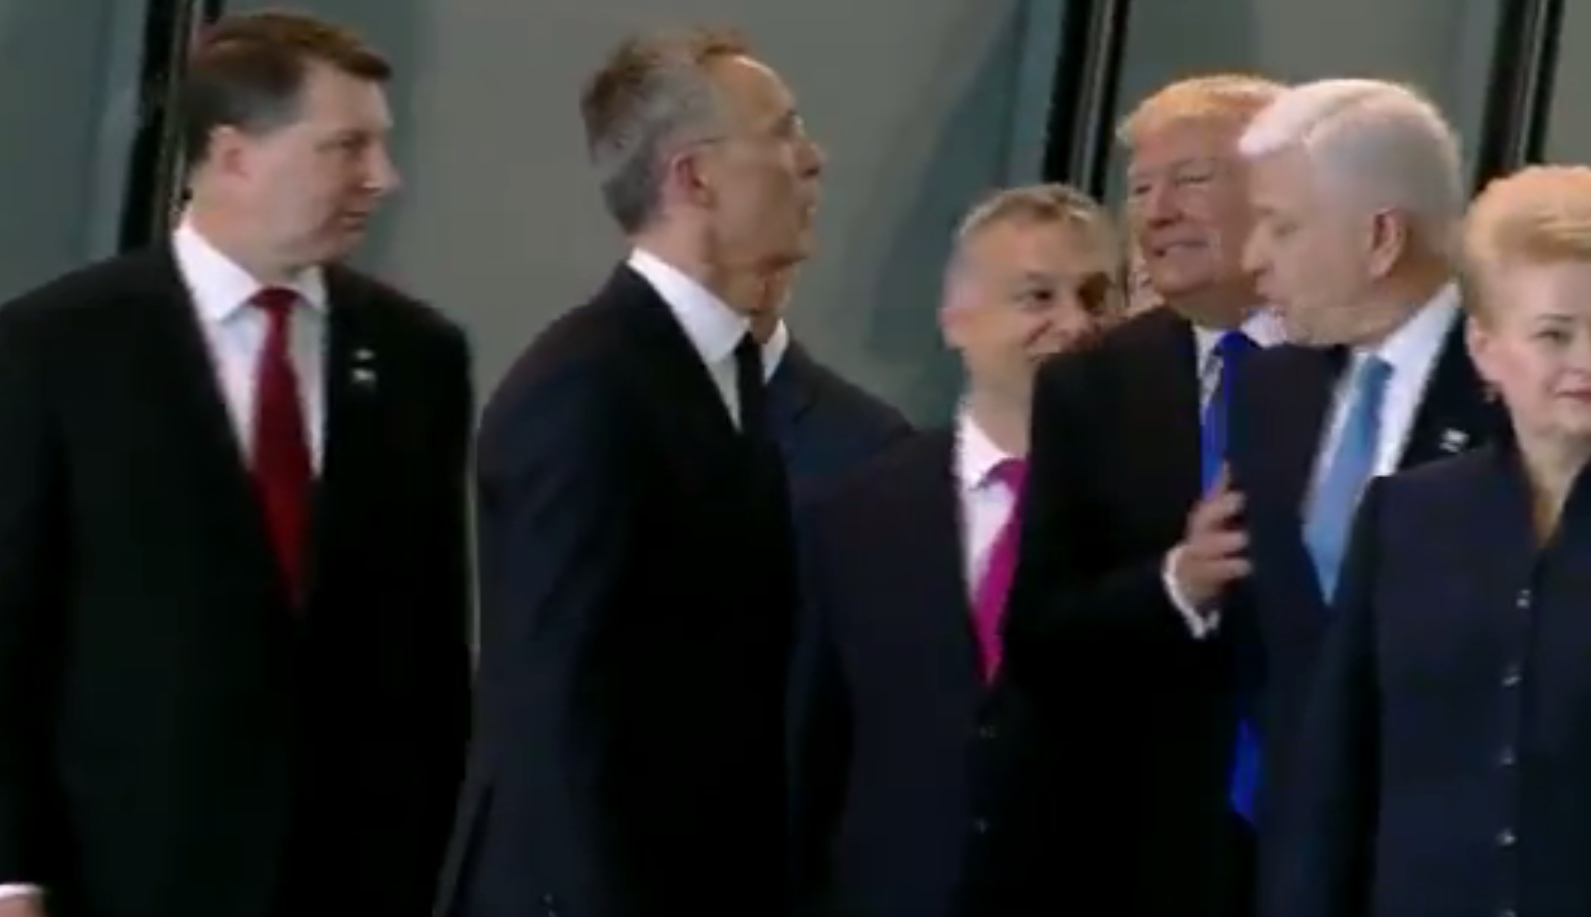 Watch Donald Trump shove the Prime Minister of Montenegro out of the way